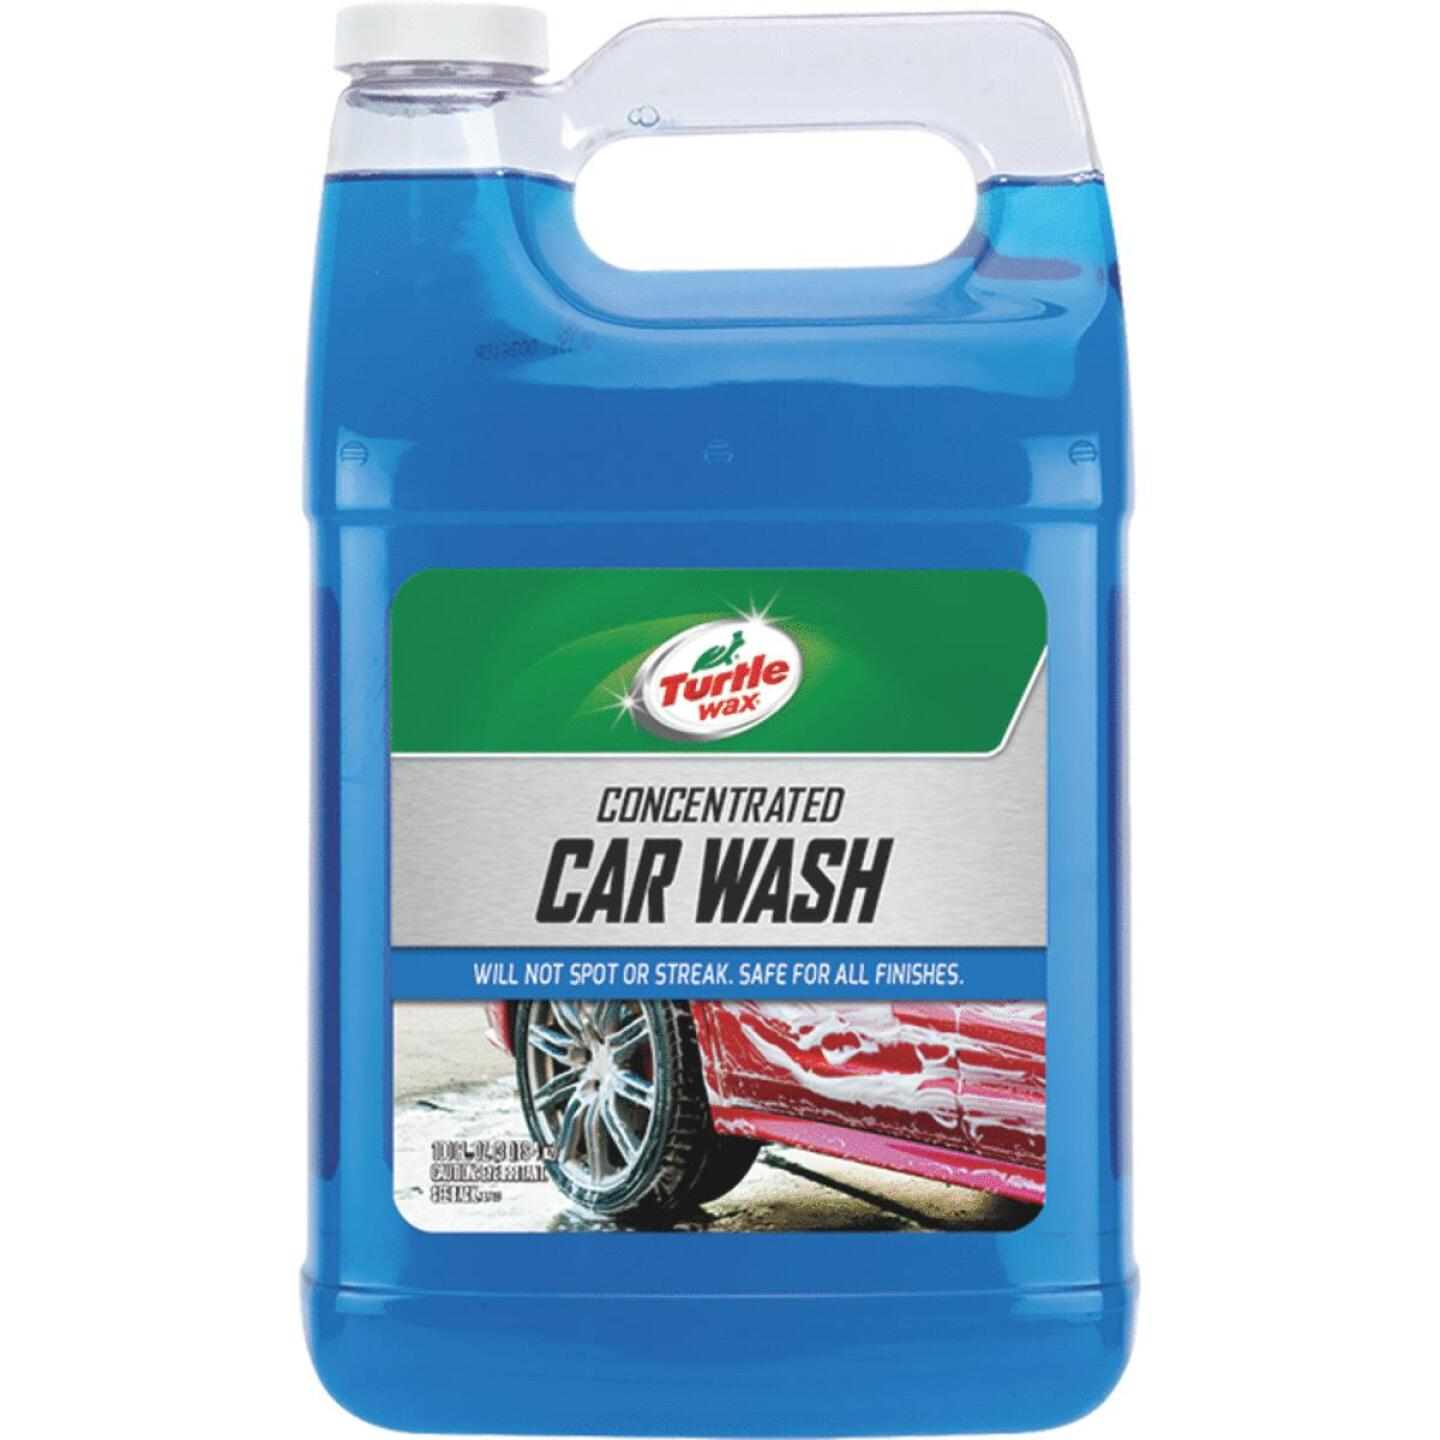 Turtle Wax 100 Oz. Liquid Concentrated Car Wash Image 1